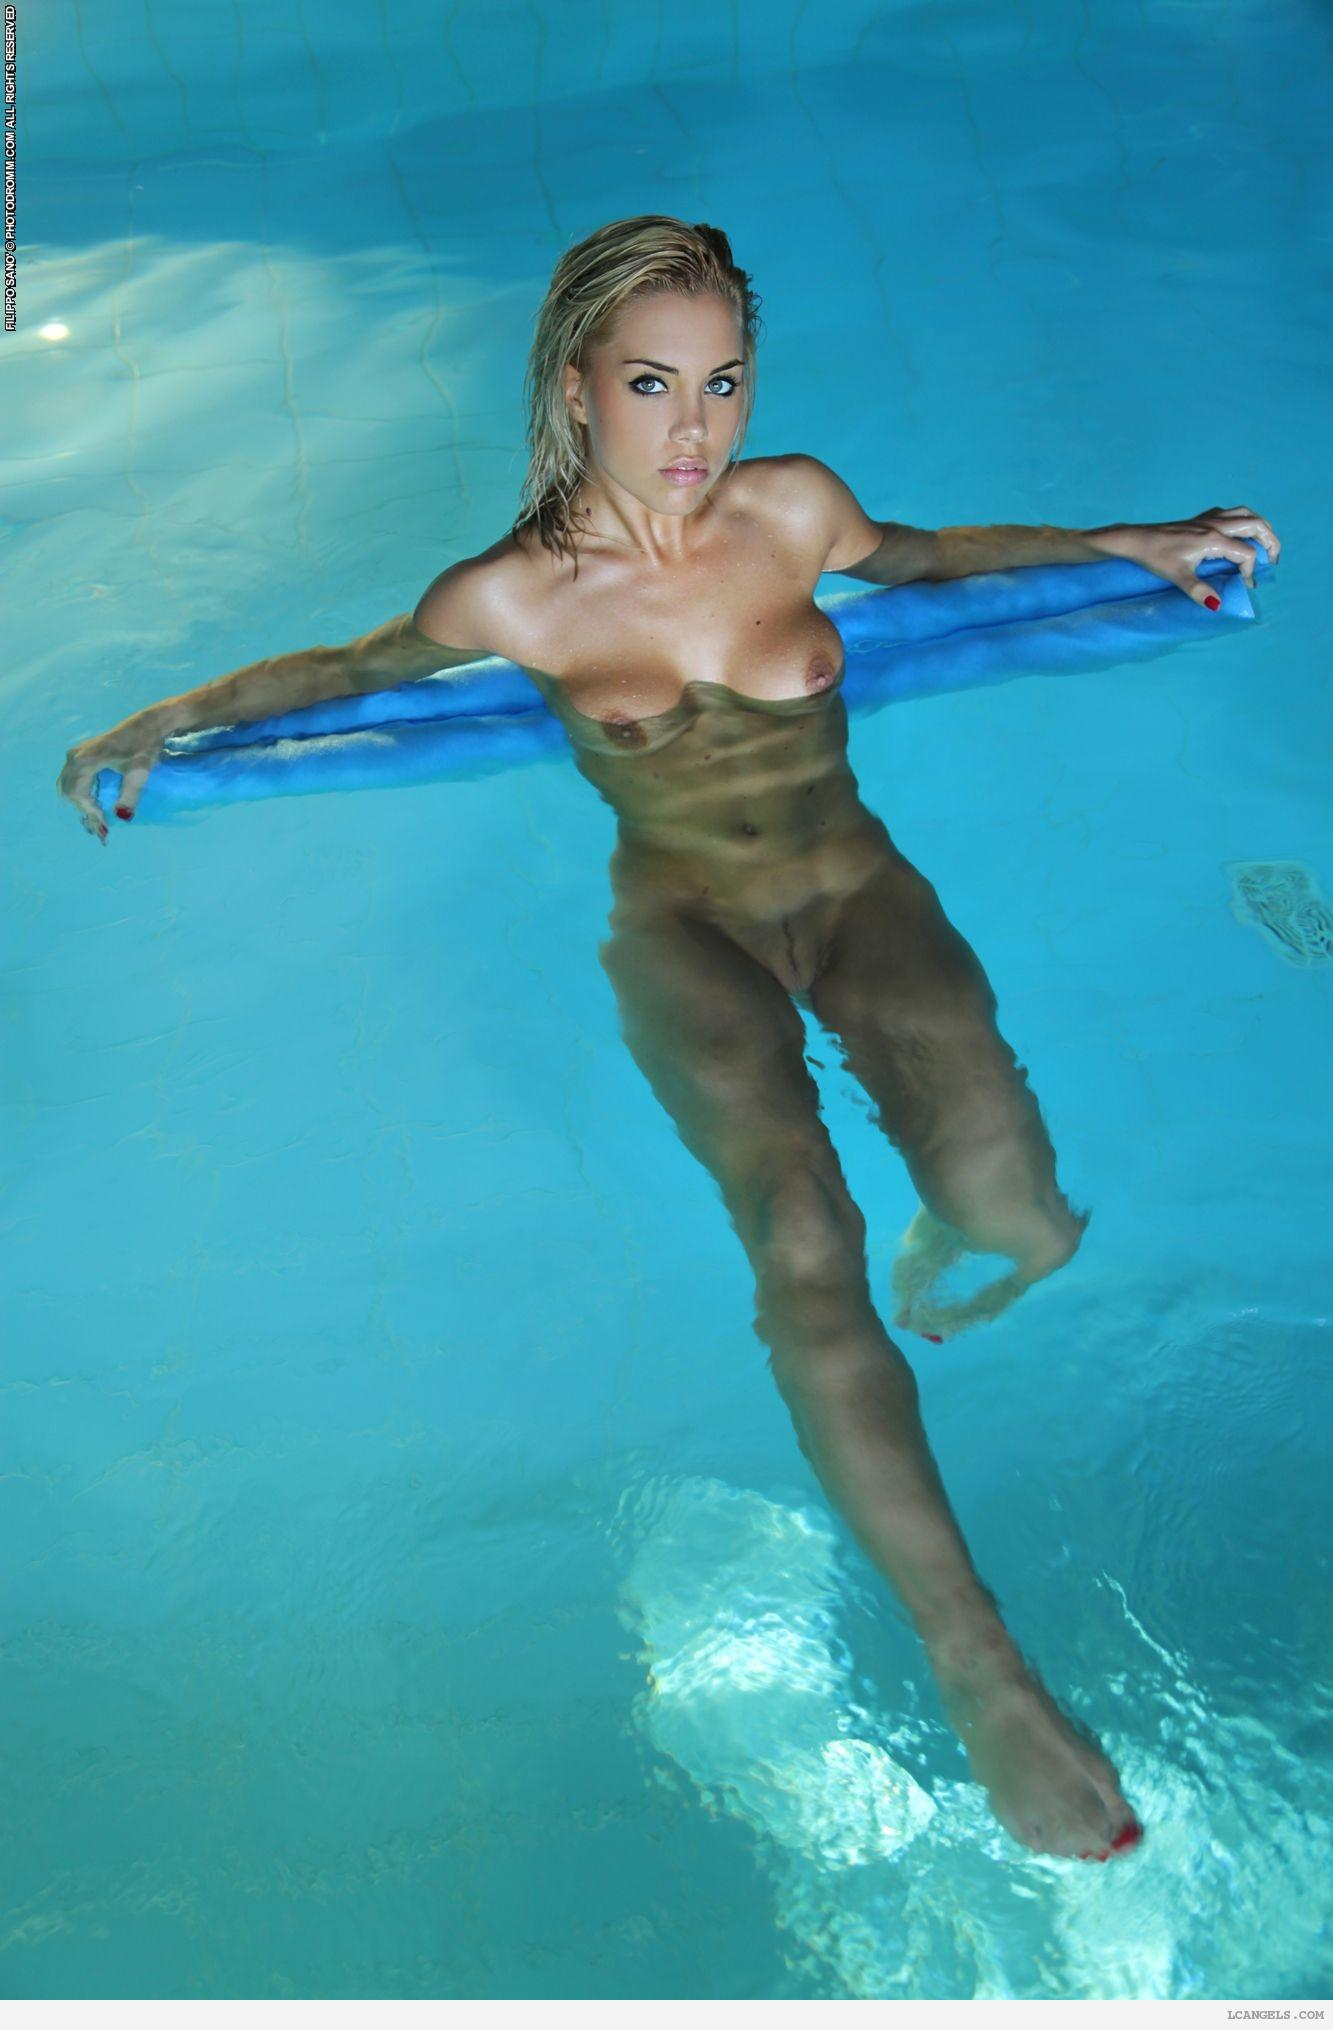 girls-nude-in-pool-wet-photo-mix-vol6-90